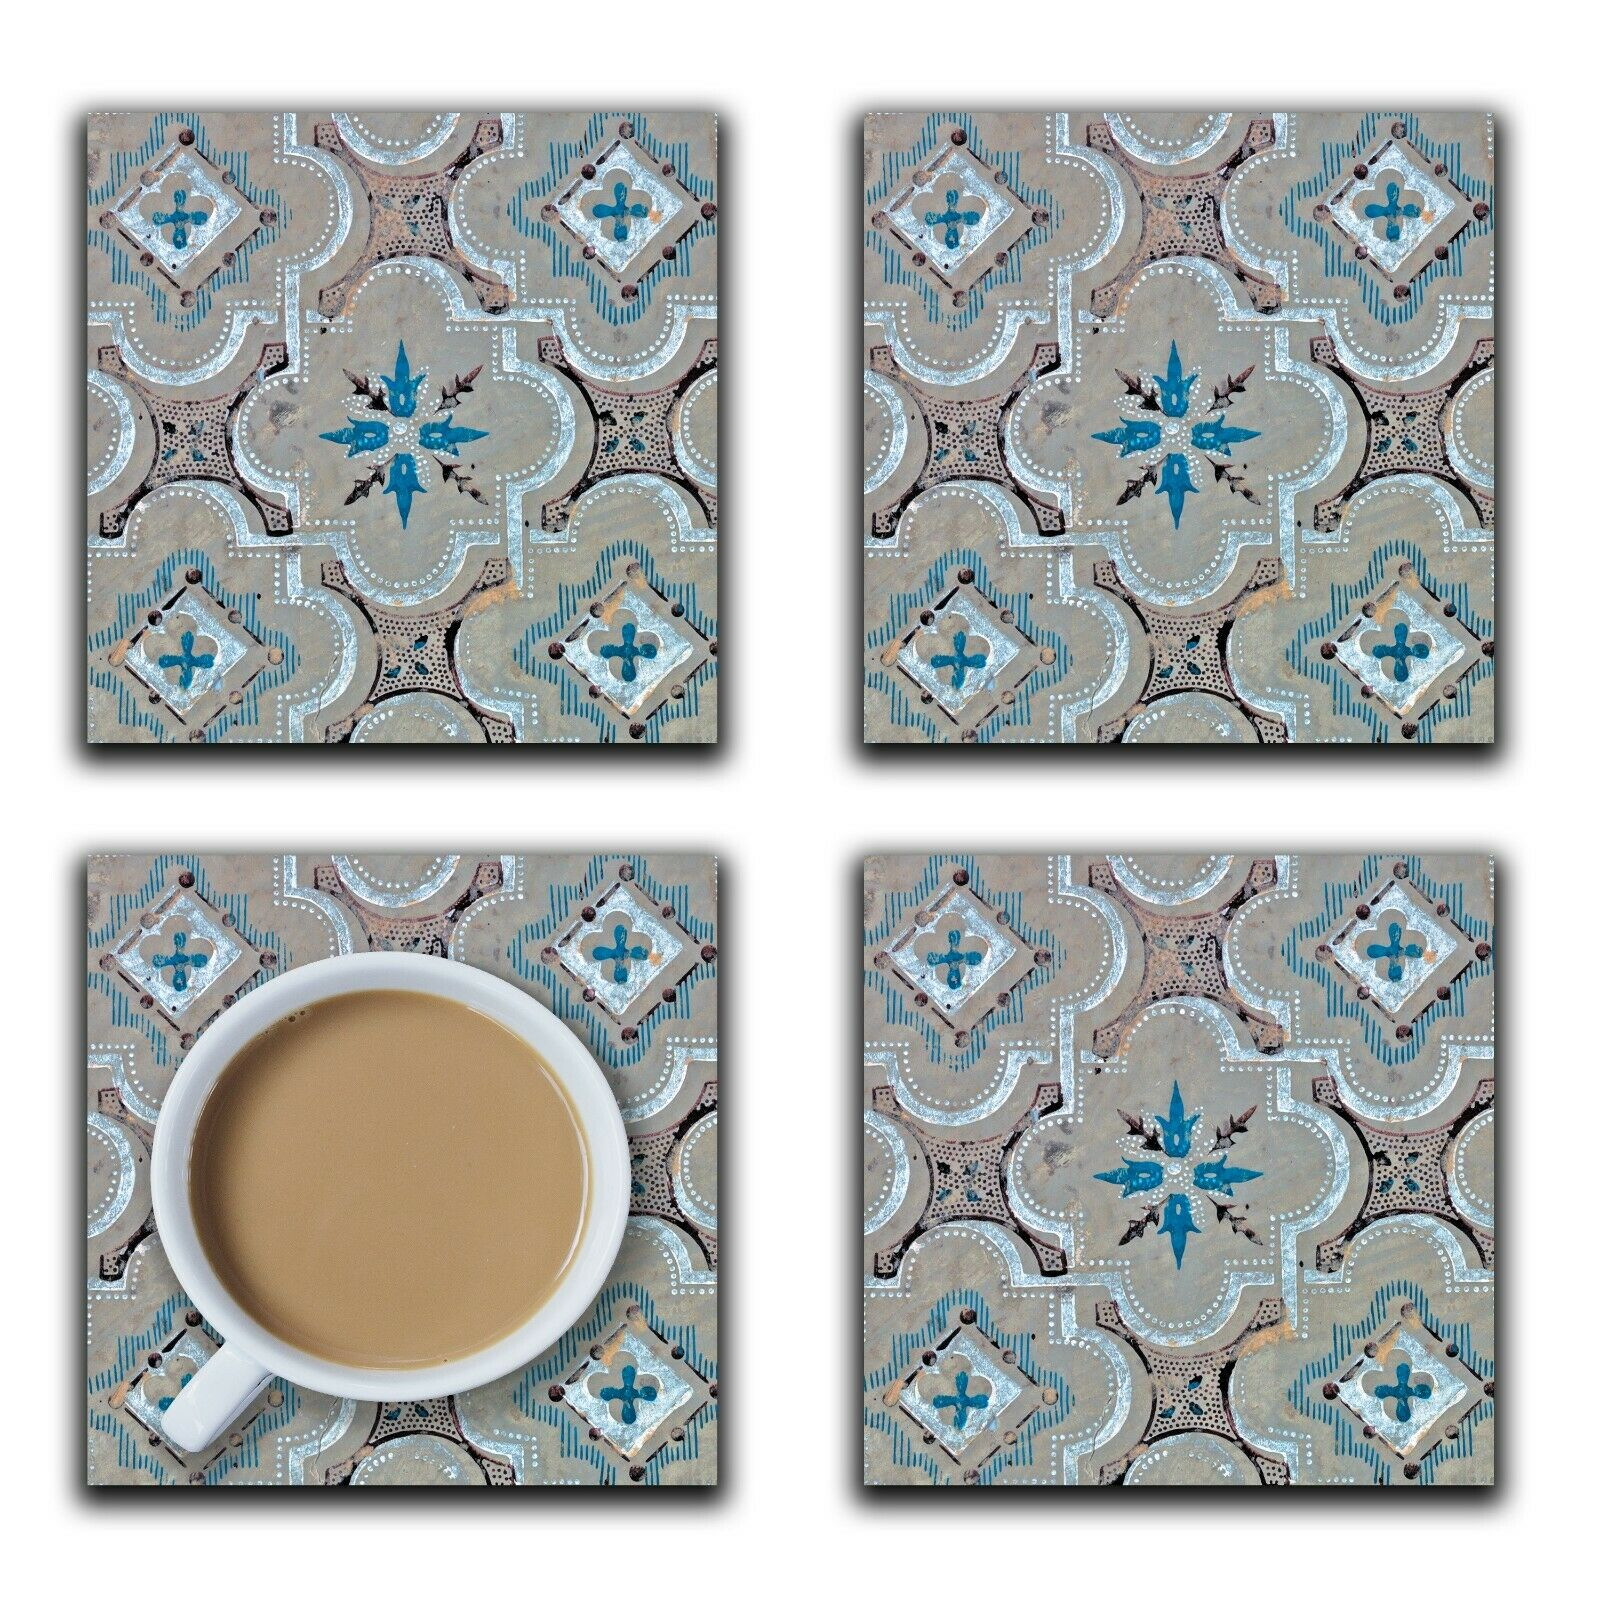 Embossi Printed Early American Tile Pattern, wood or ceramic tile, set of 4 Coasters